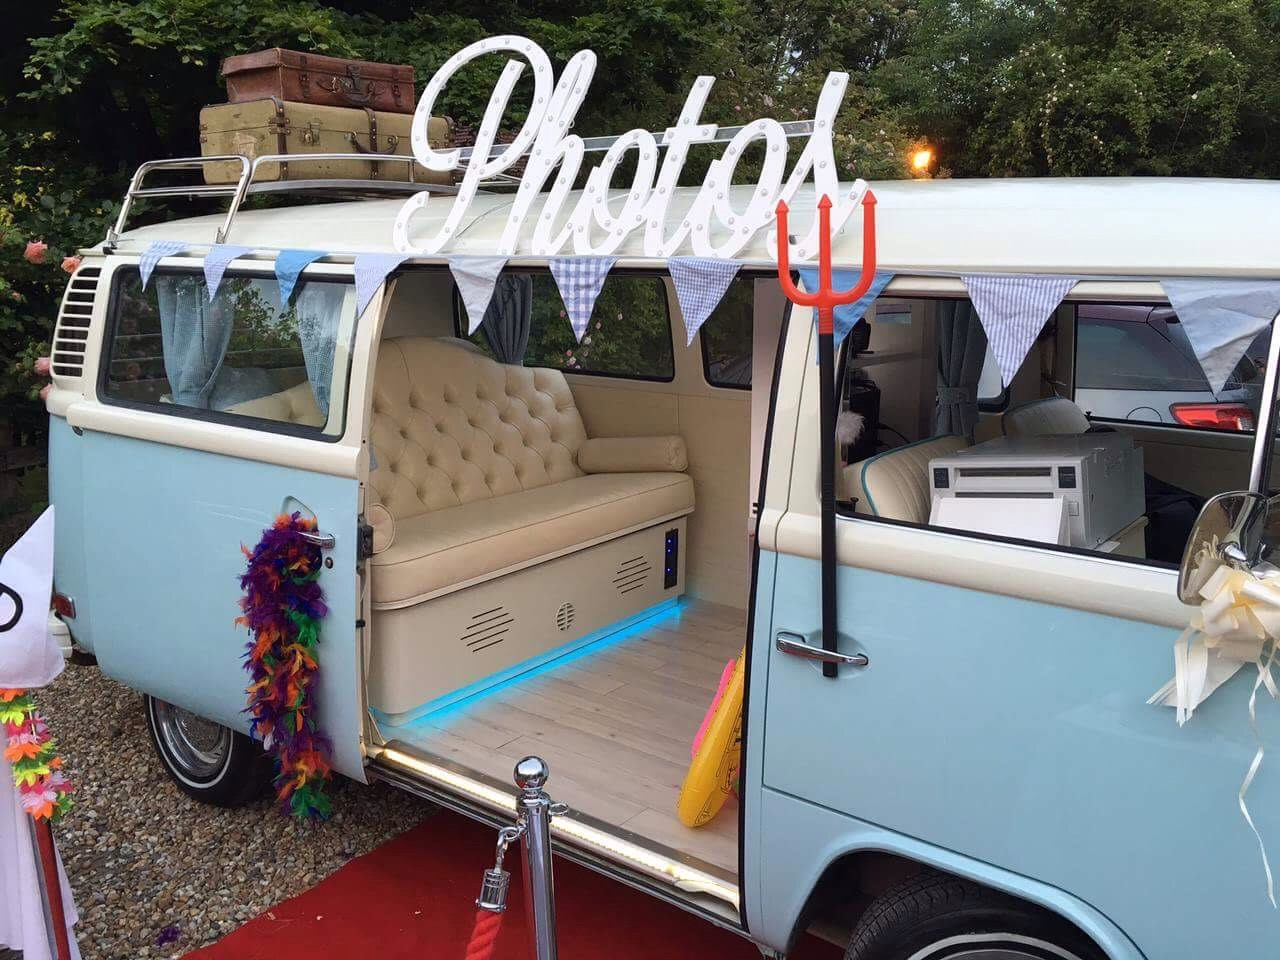 VW campervan photobooth